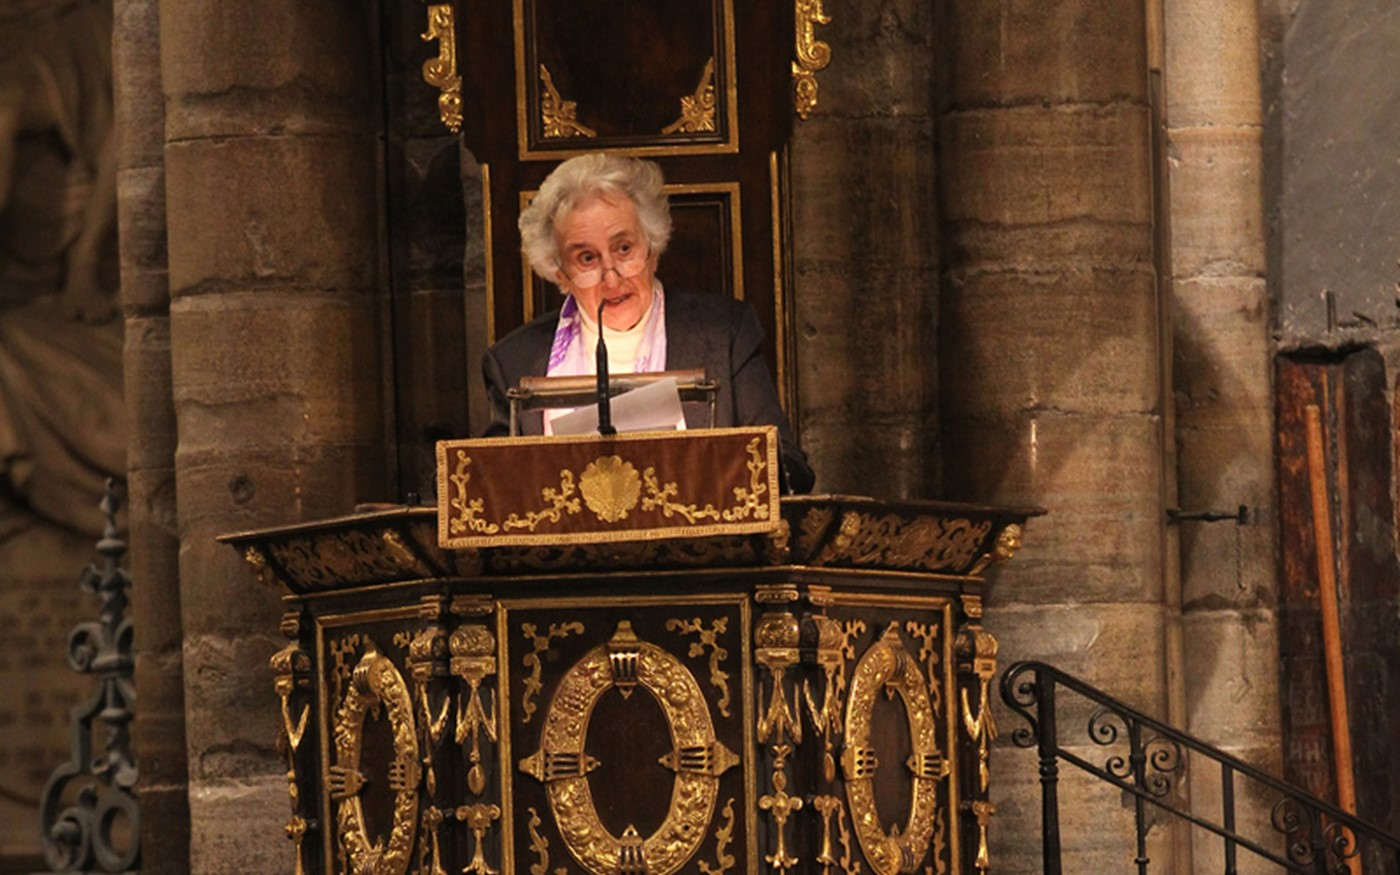 Anita Lasker-Wallfisch, a surviving member of the Women's Orchestra of Auschwitz, gives her testimony from the Great Pulpit